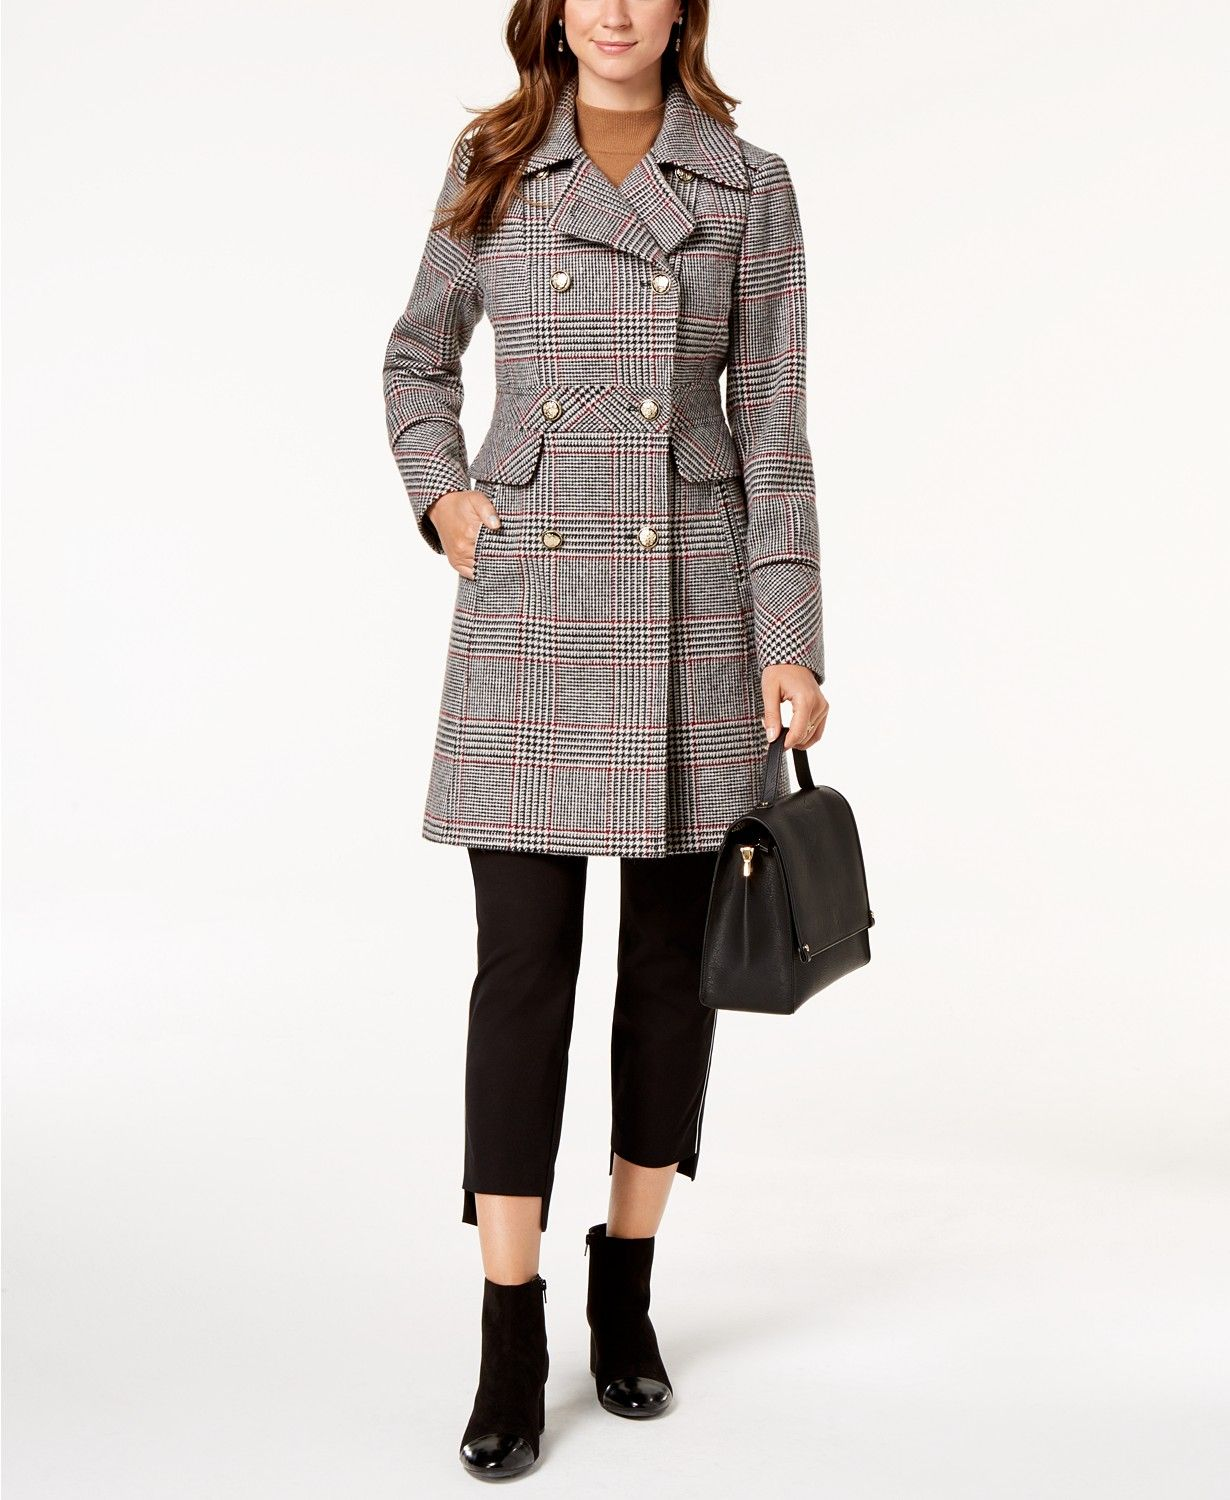 58413e3e0d9a5f Vince Camuto Wing-Collar Military Coat - Coats - Women - Macy's ...